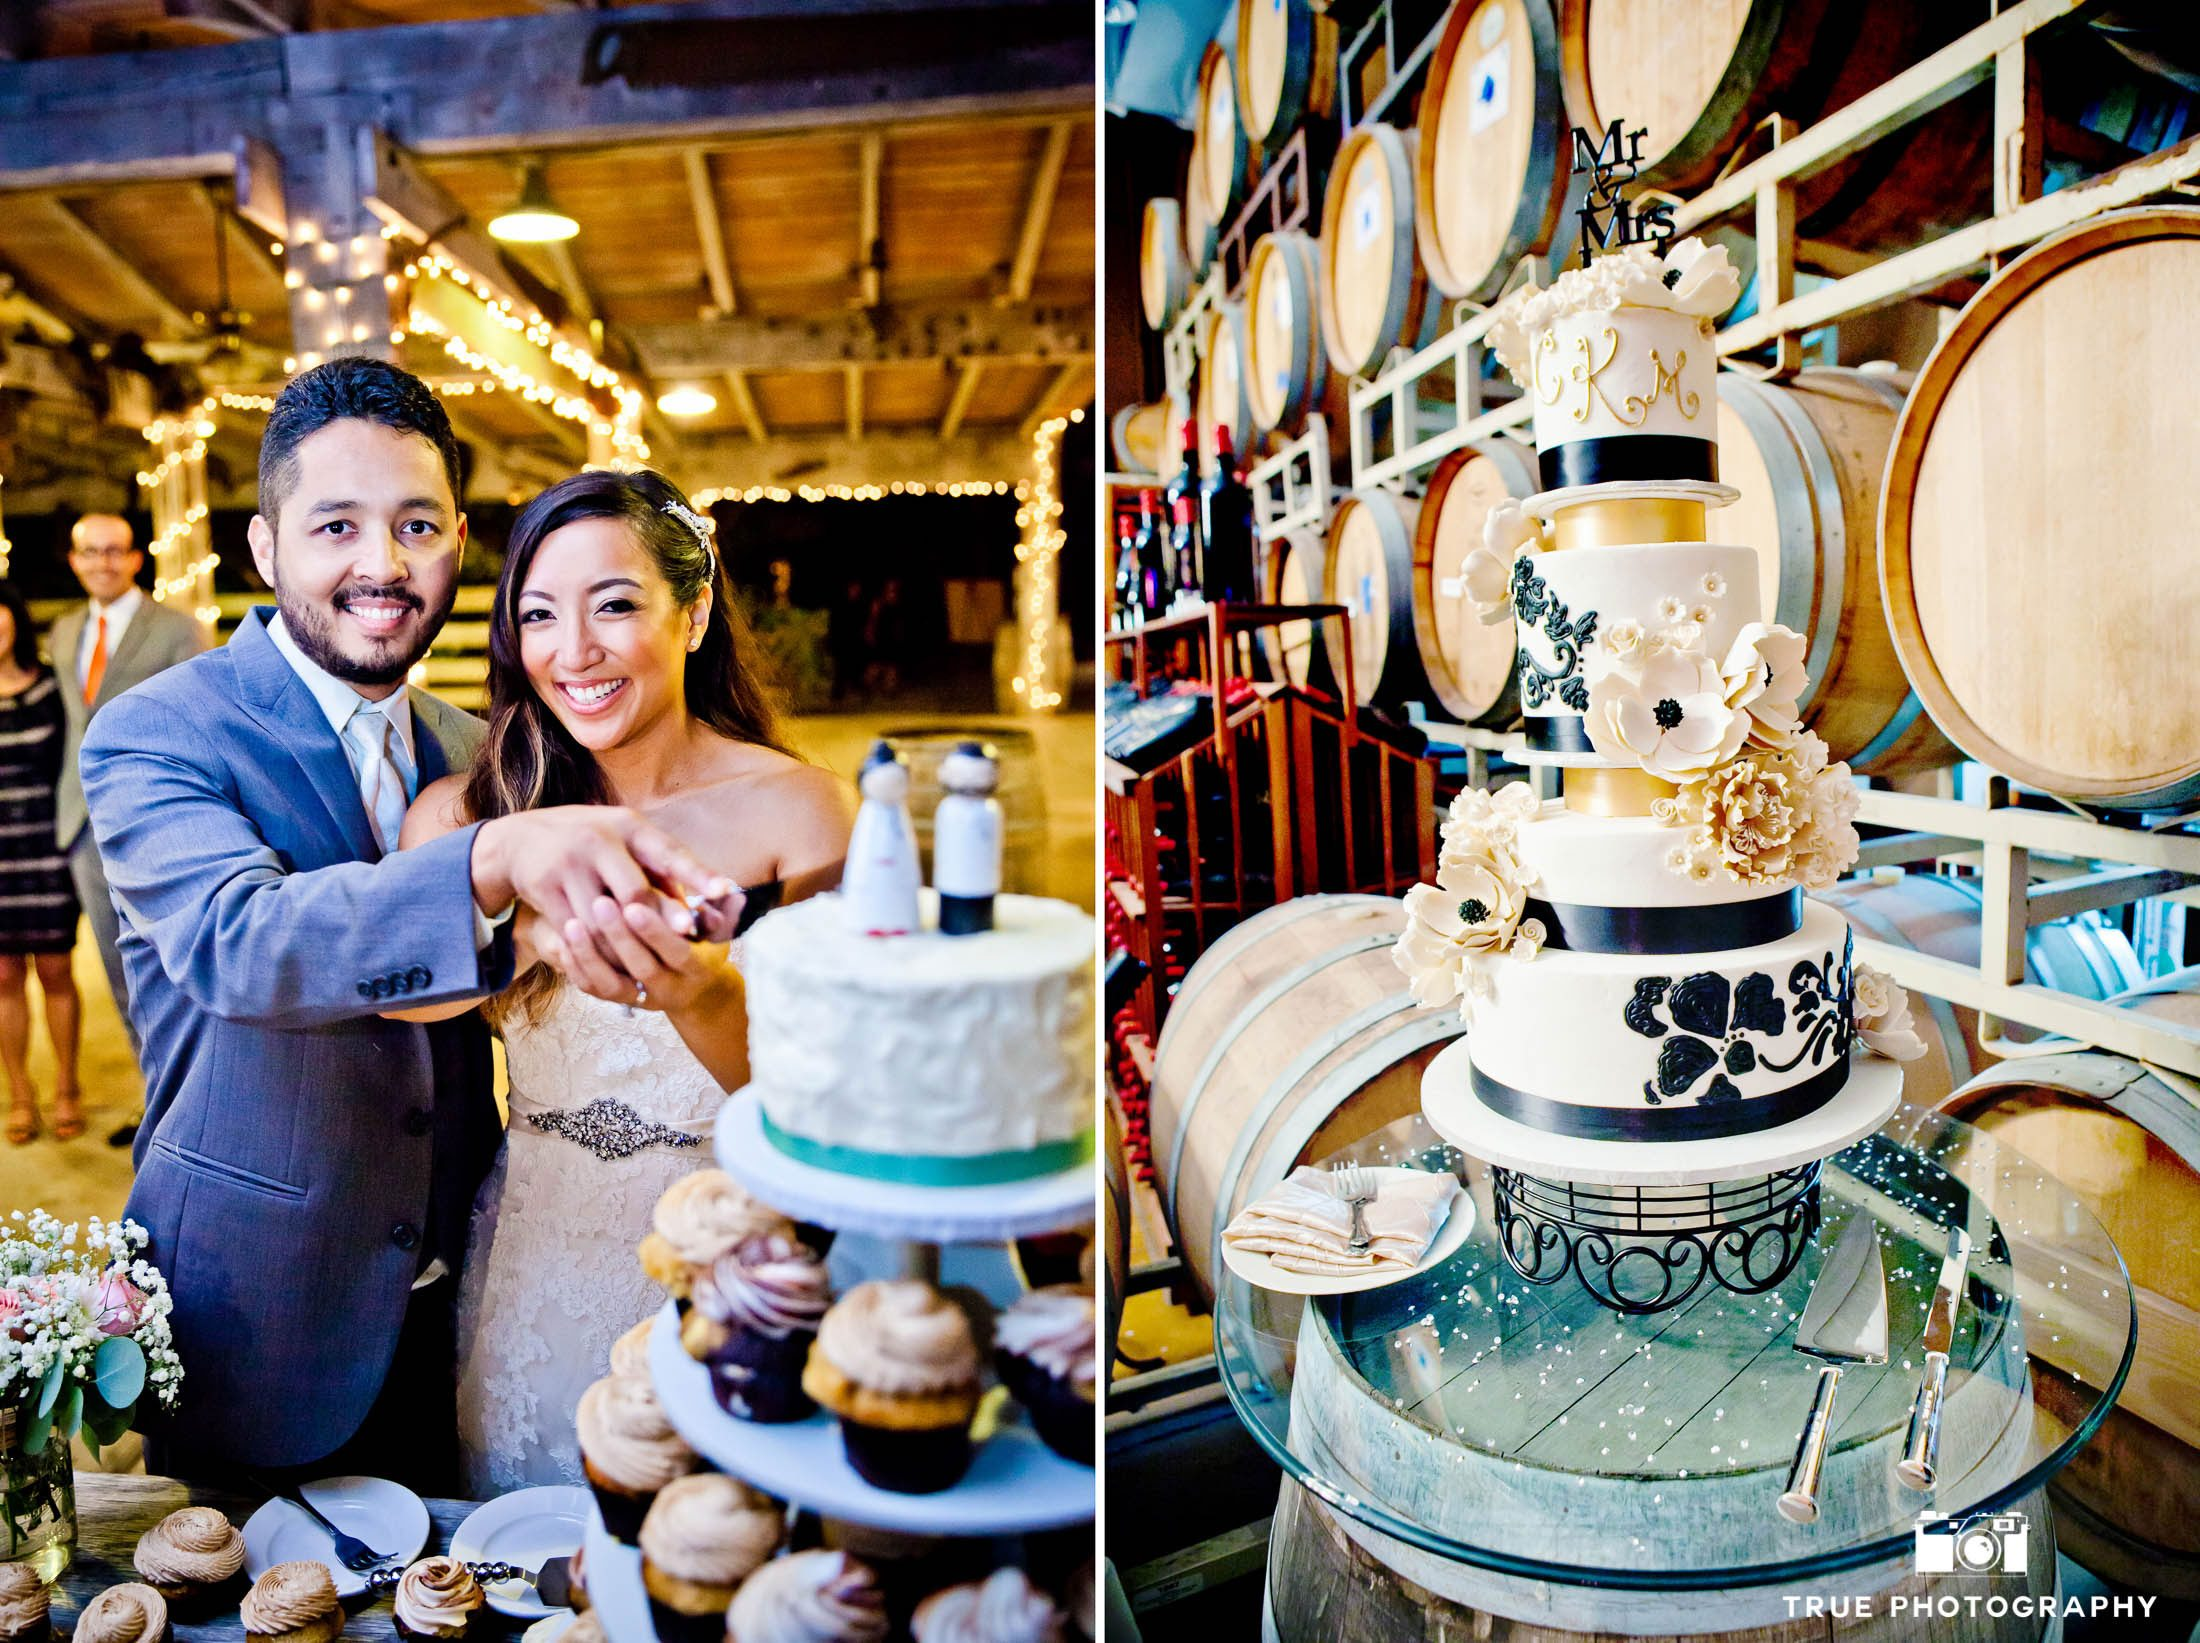 Couple Cuts into Cake during Wedding Reception